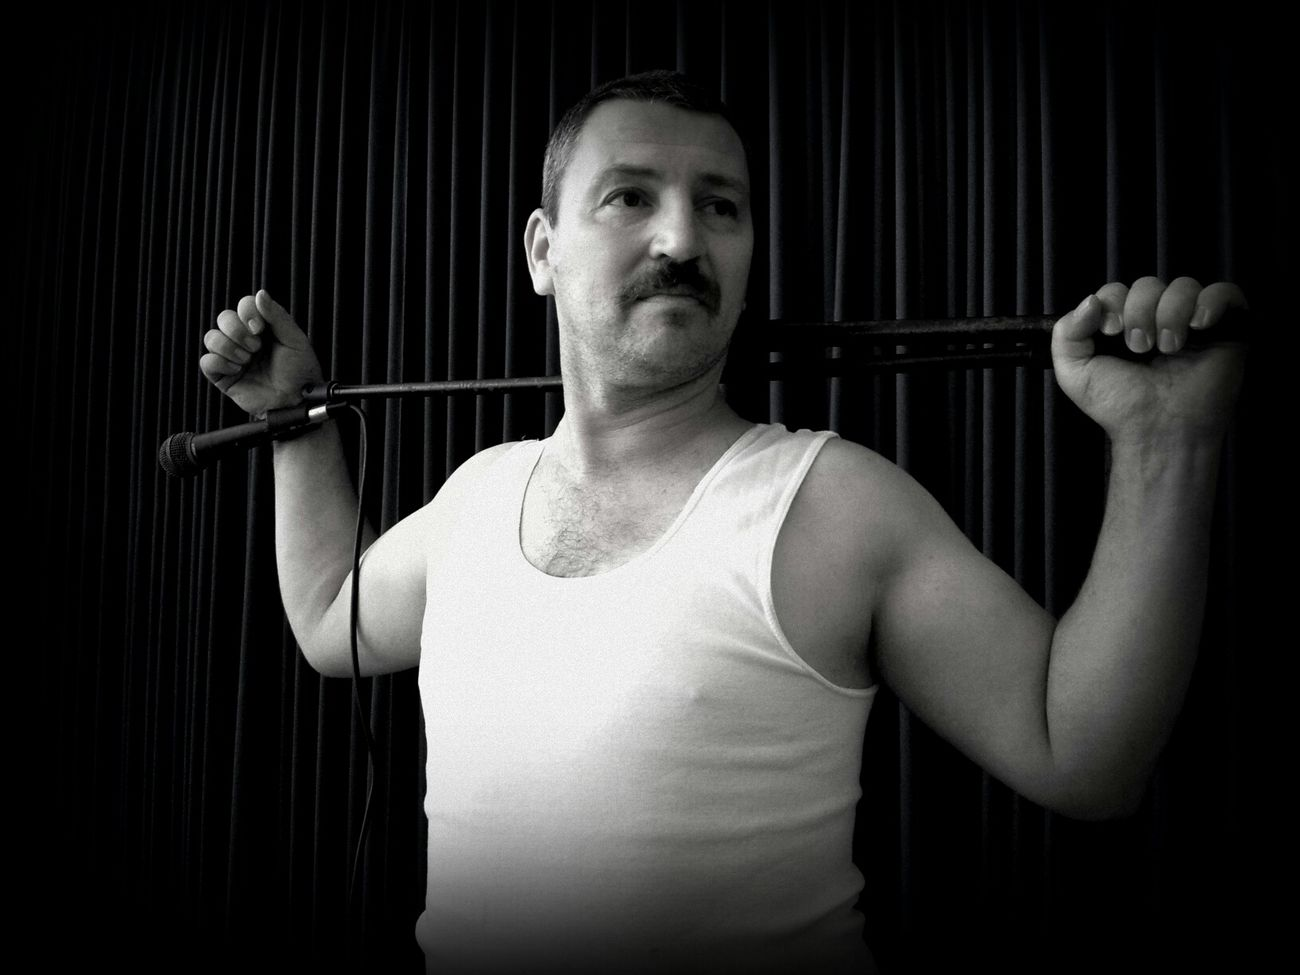 B&W Portrait 1970's Freddymercury Movember Moustache Blackandwhite My Man My Mo For Movember